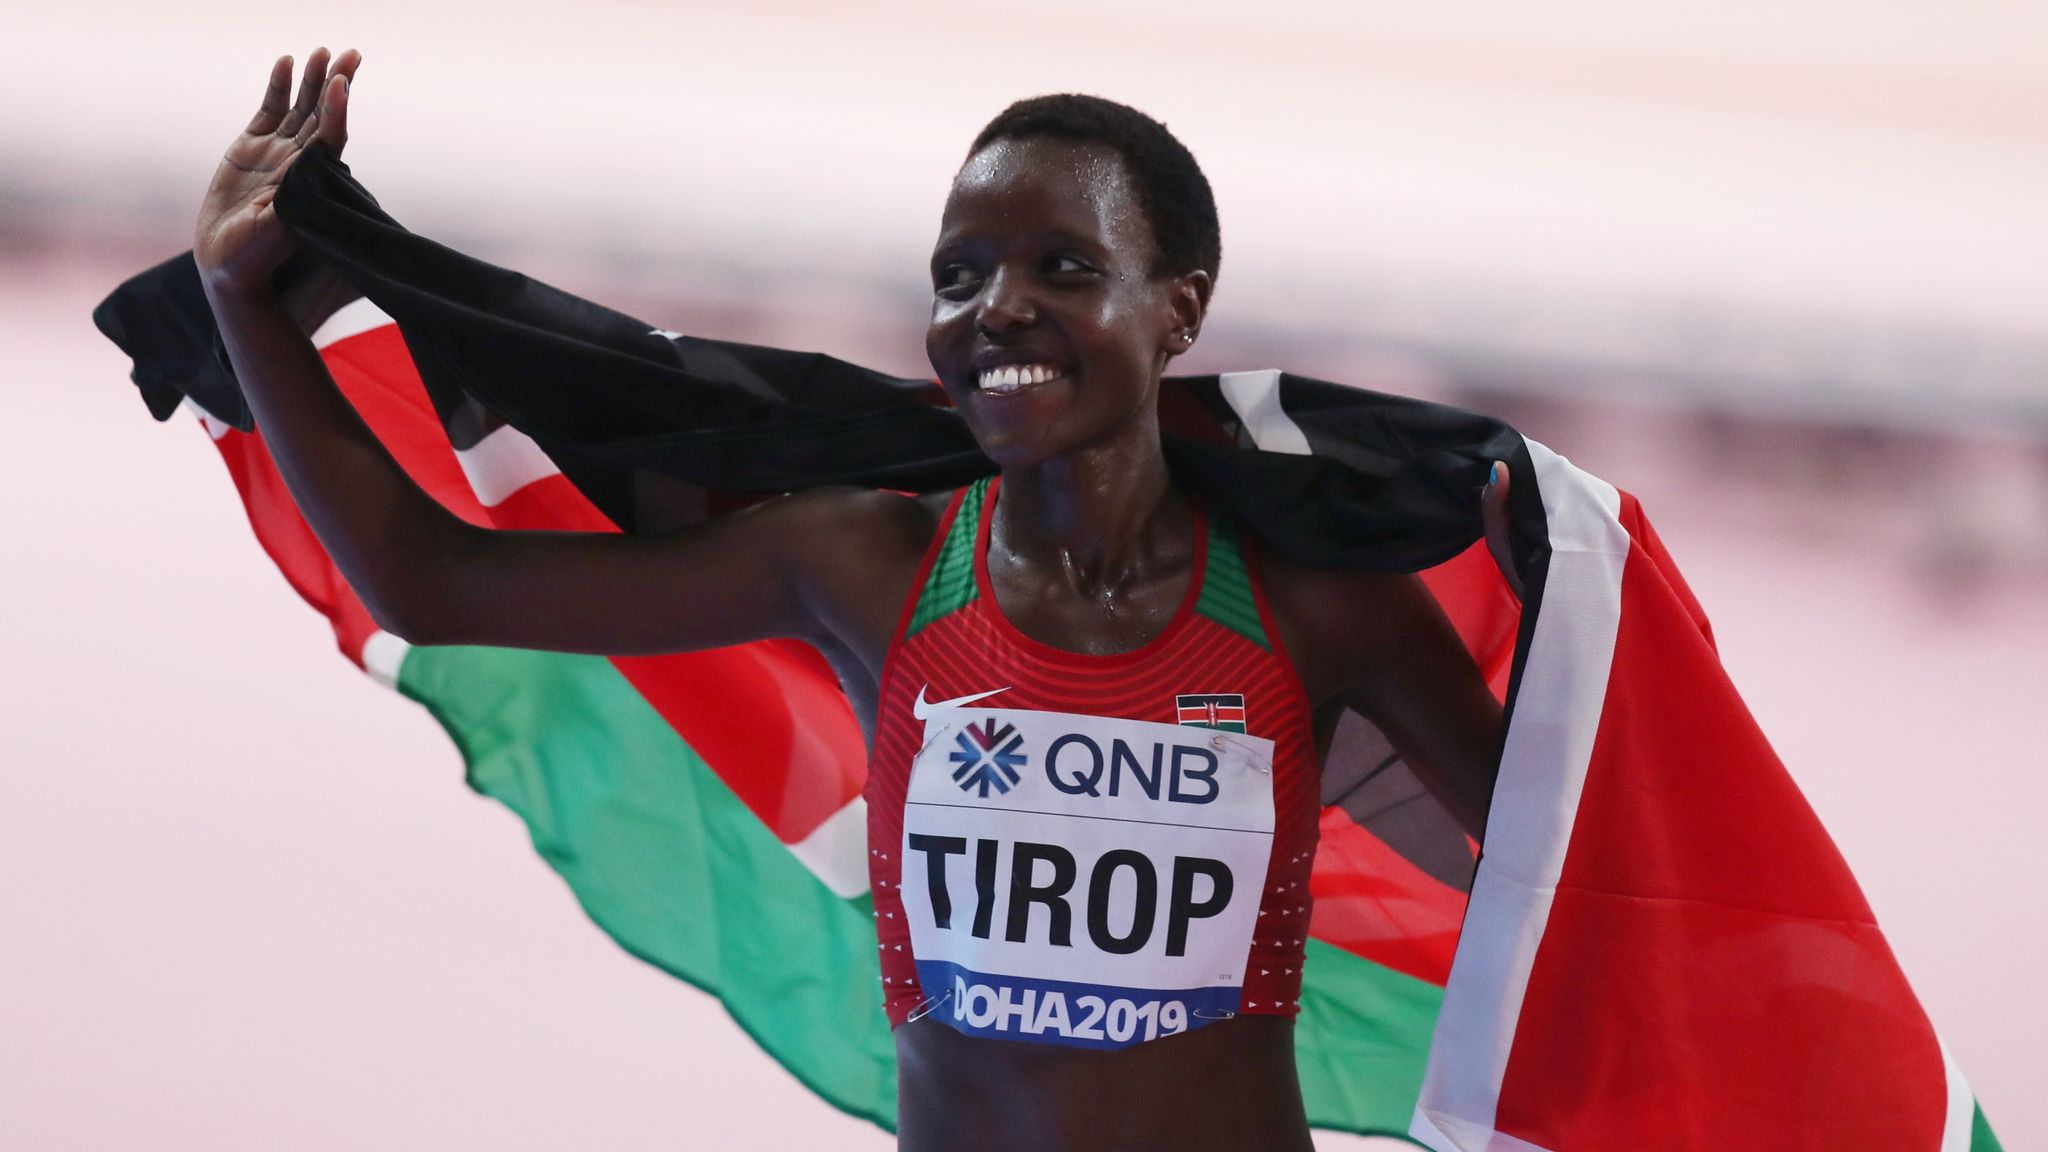 Olympic athlete, world medallist, and world record holder Agnes Tirop found stabbed to death at her home in Kenya aged 25; police say husband is suspect in her murder